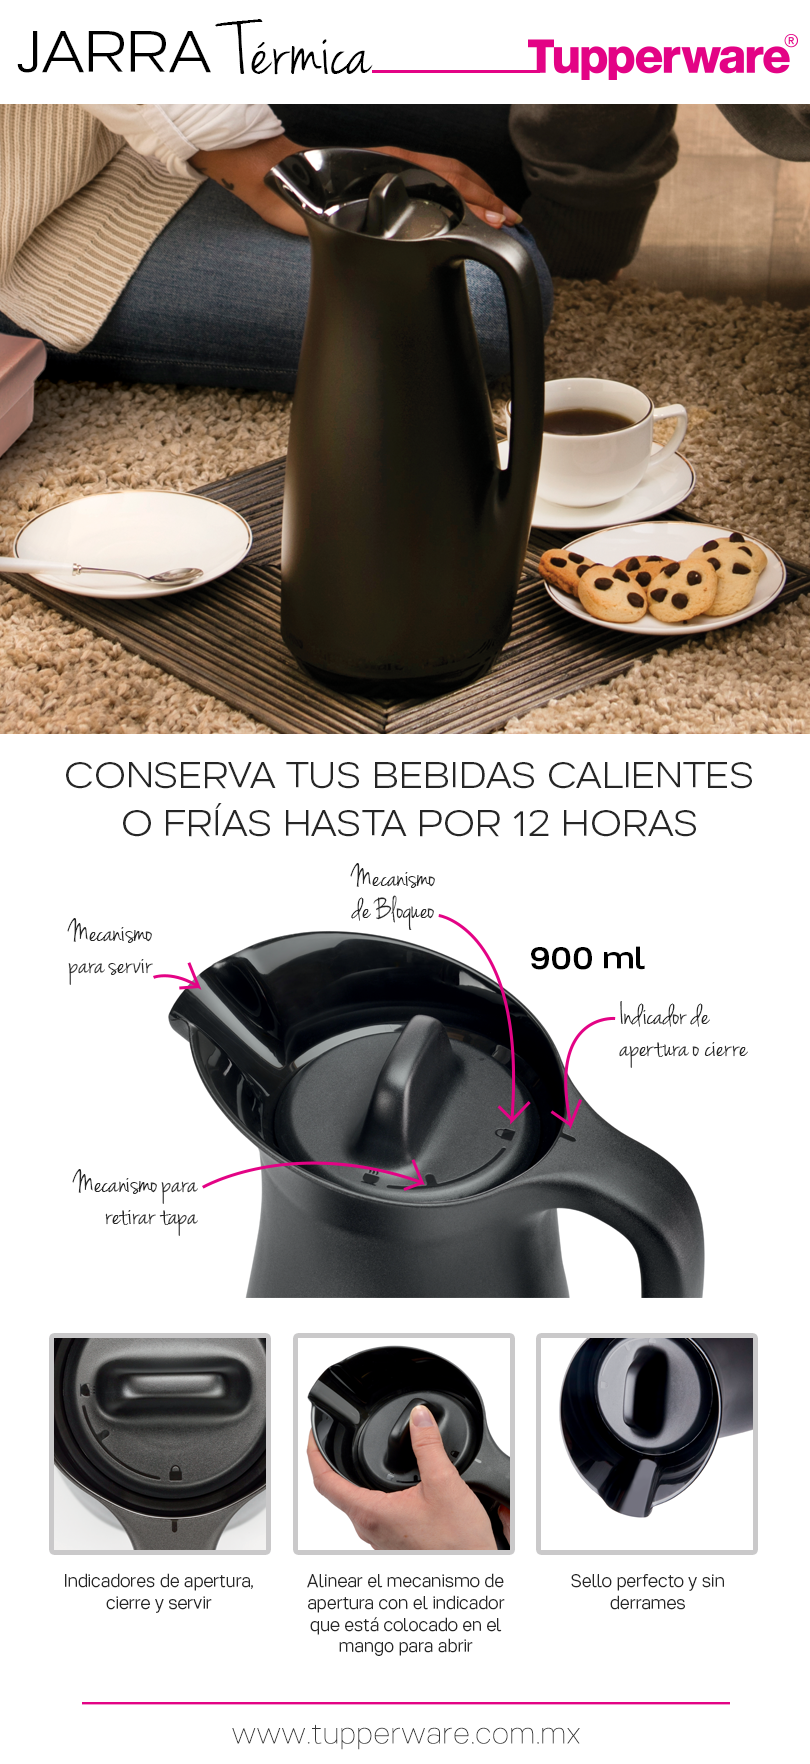 Nueva! Jarra Térmica Tupperware. | Productos Tupperware | Pinterest